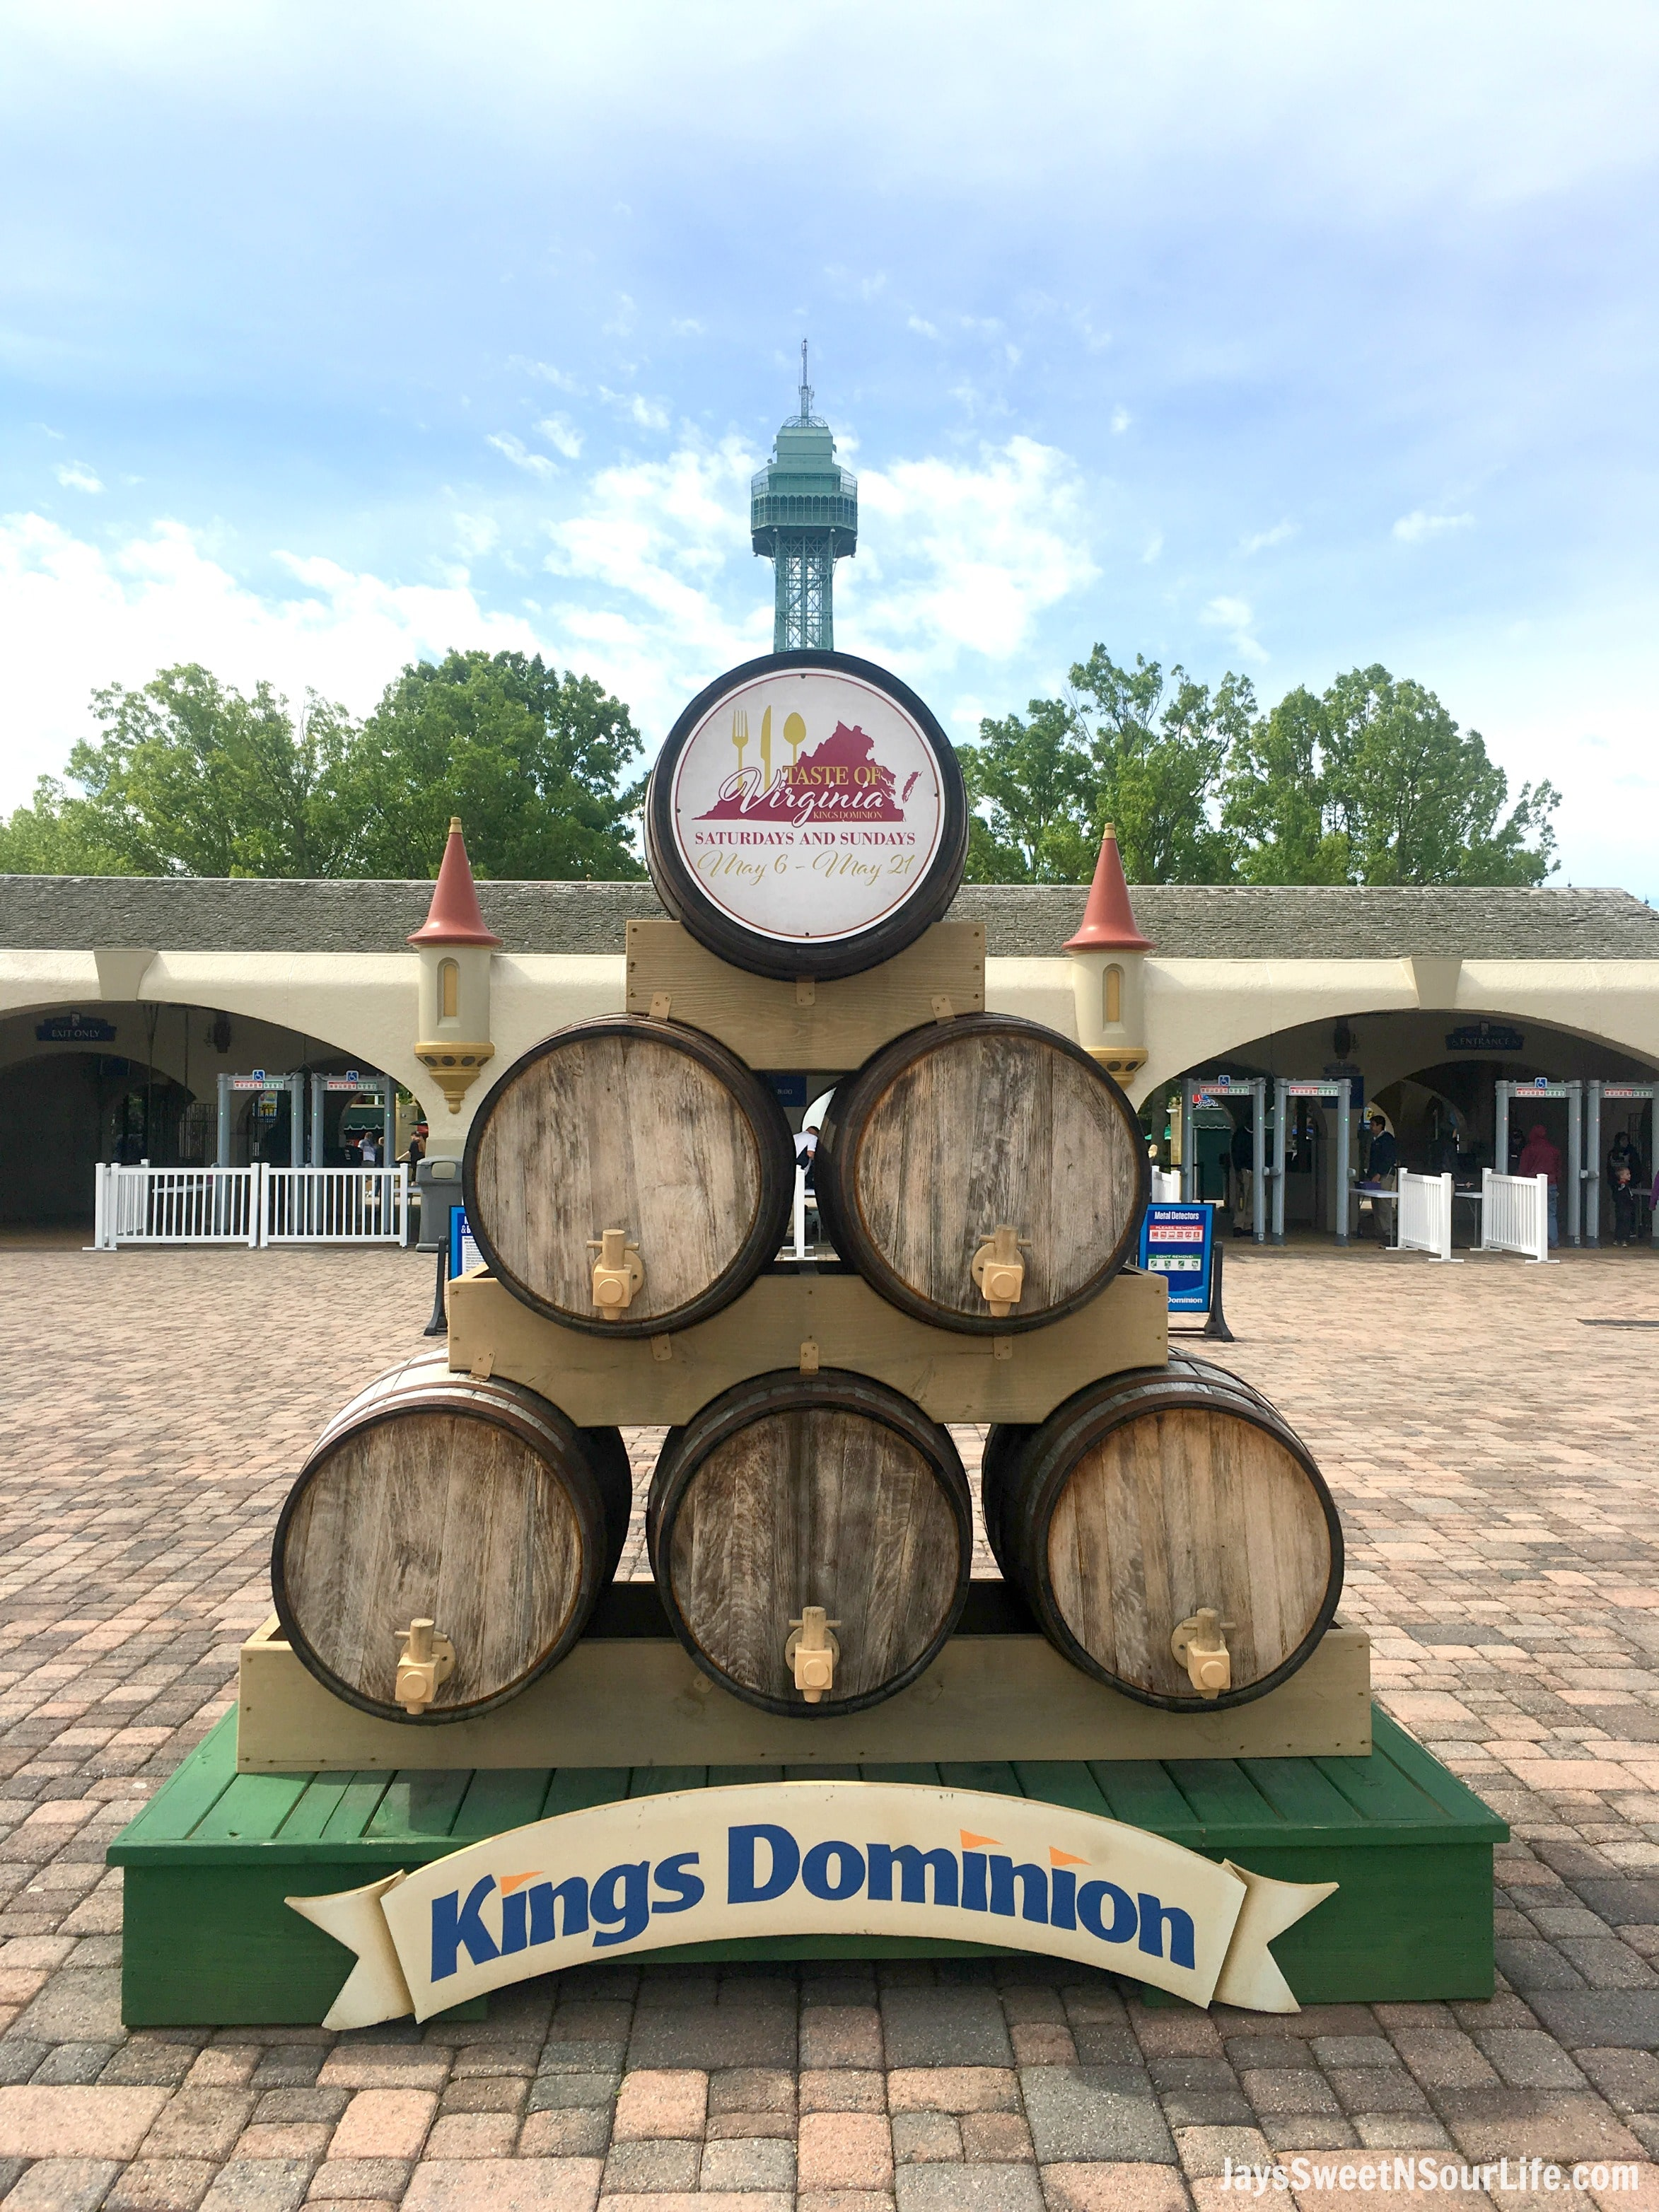 Taste of Virginia Food Festival at Kings Dominion